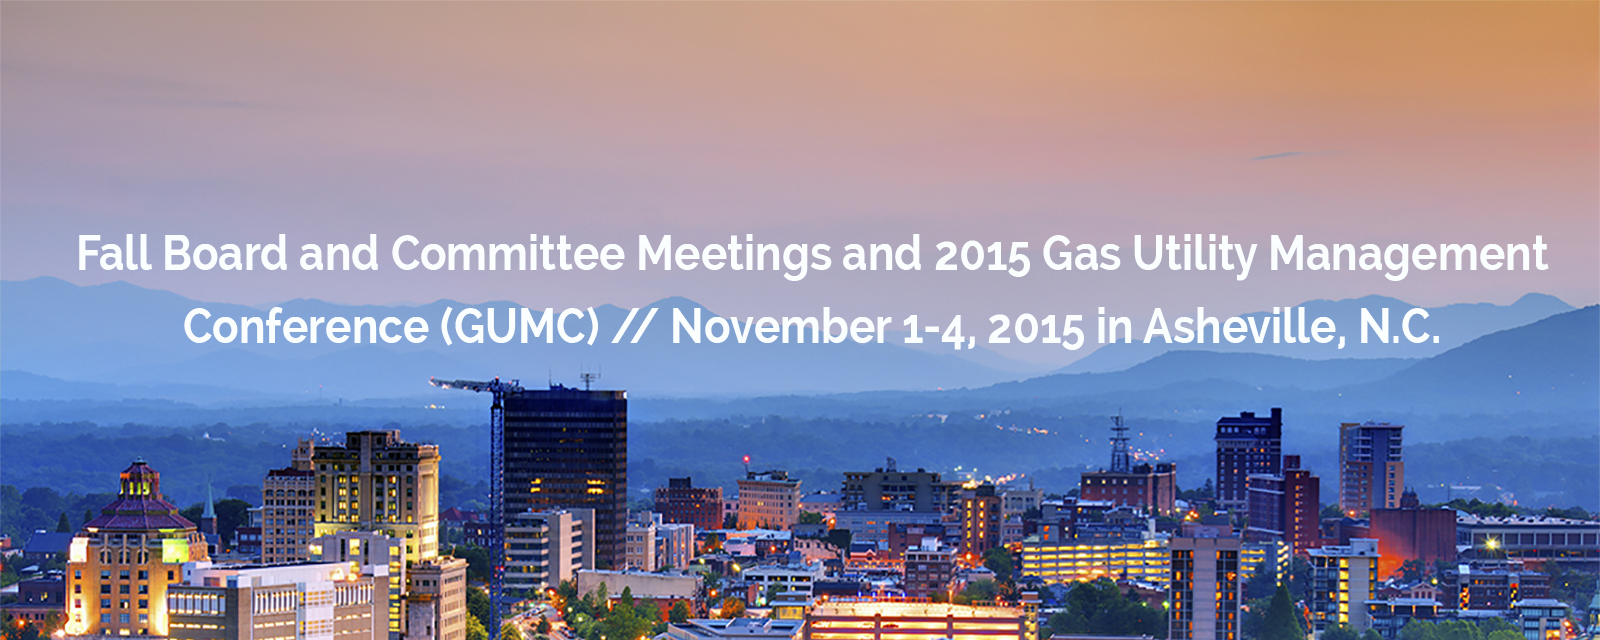 Fall Board and Committee Meetings and 2015 Gas Utility Management Conference (GUMC) // November 1-4, 2015 in Asheville, N.C.